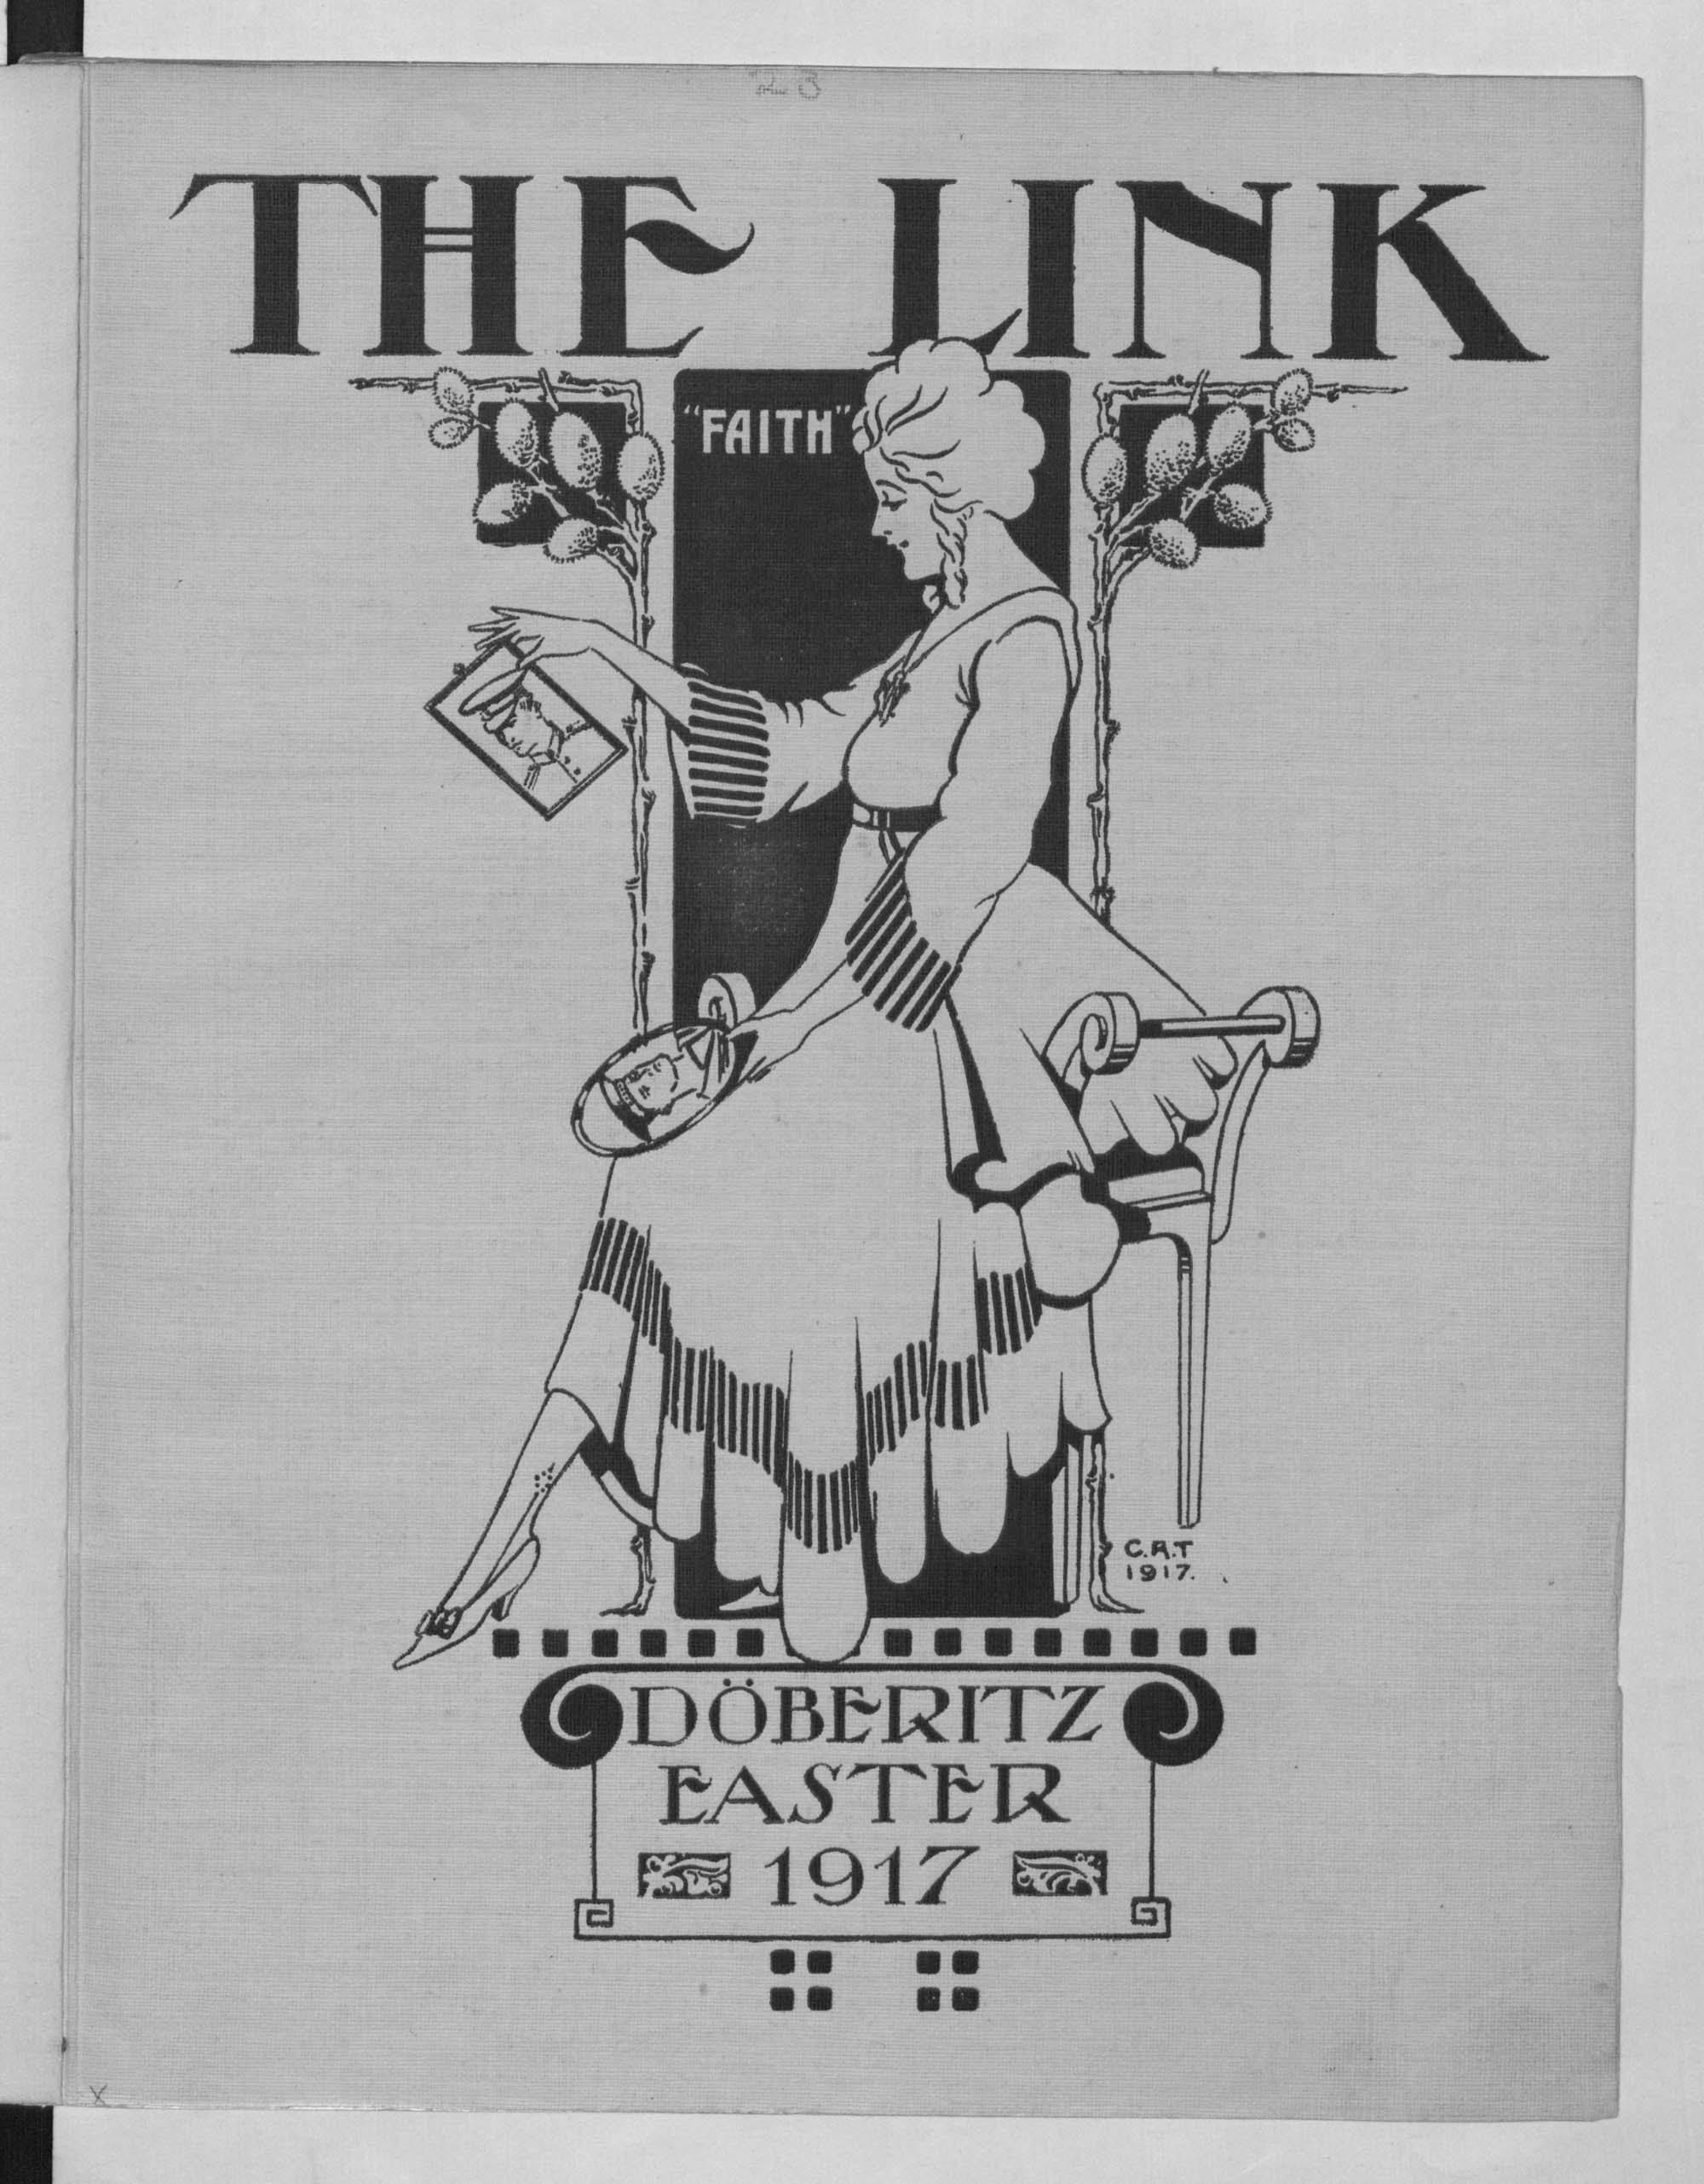 'The Link': a souvenir book published by British prisoners of war interned at Doeberitz, Germany, 1914-17.